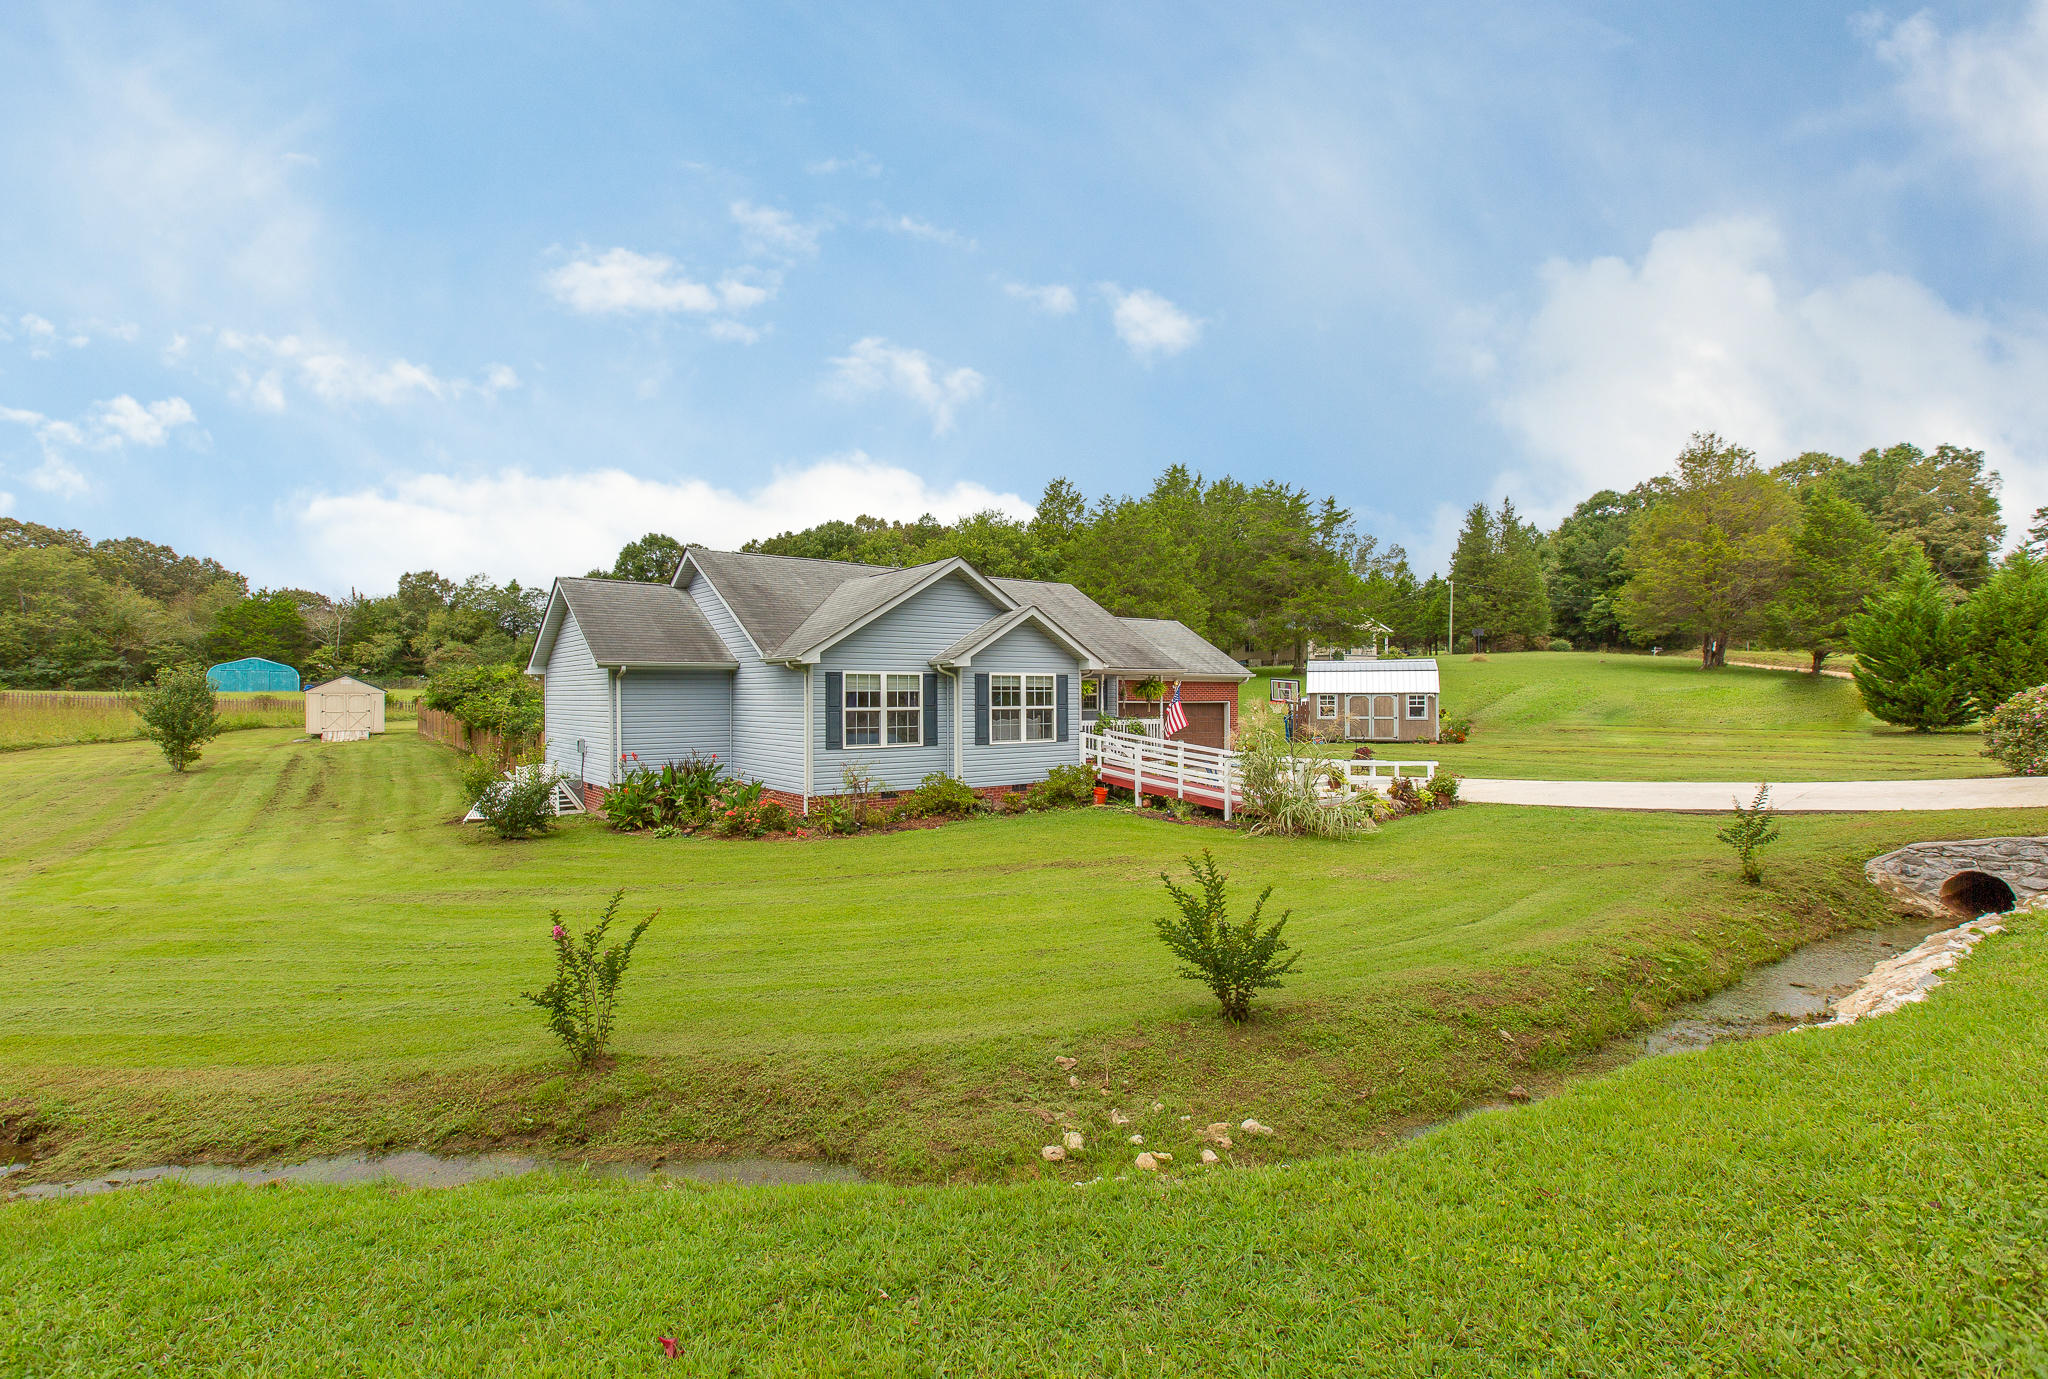 14019 Mt Tabor Rd, Soddy Daisy, TN 37379